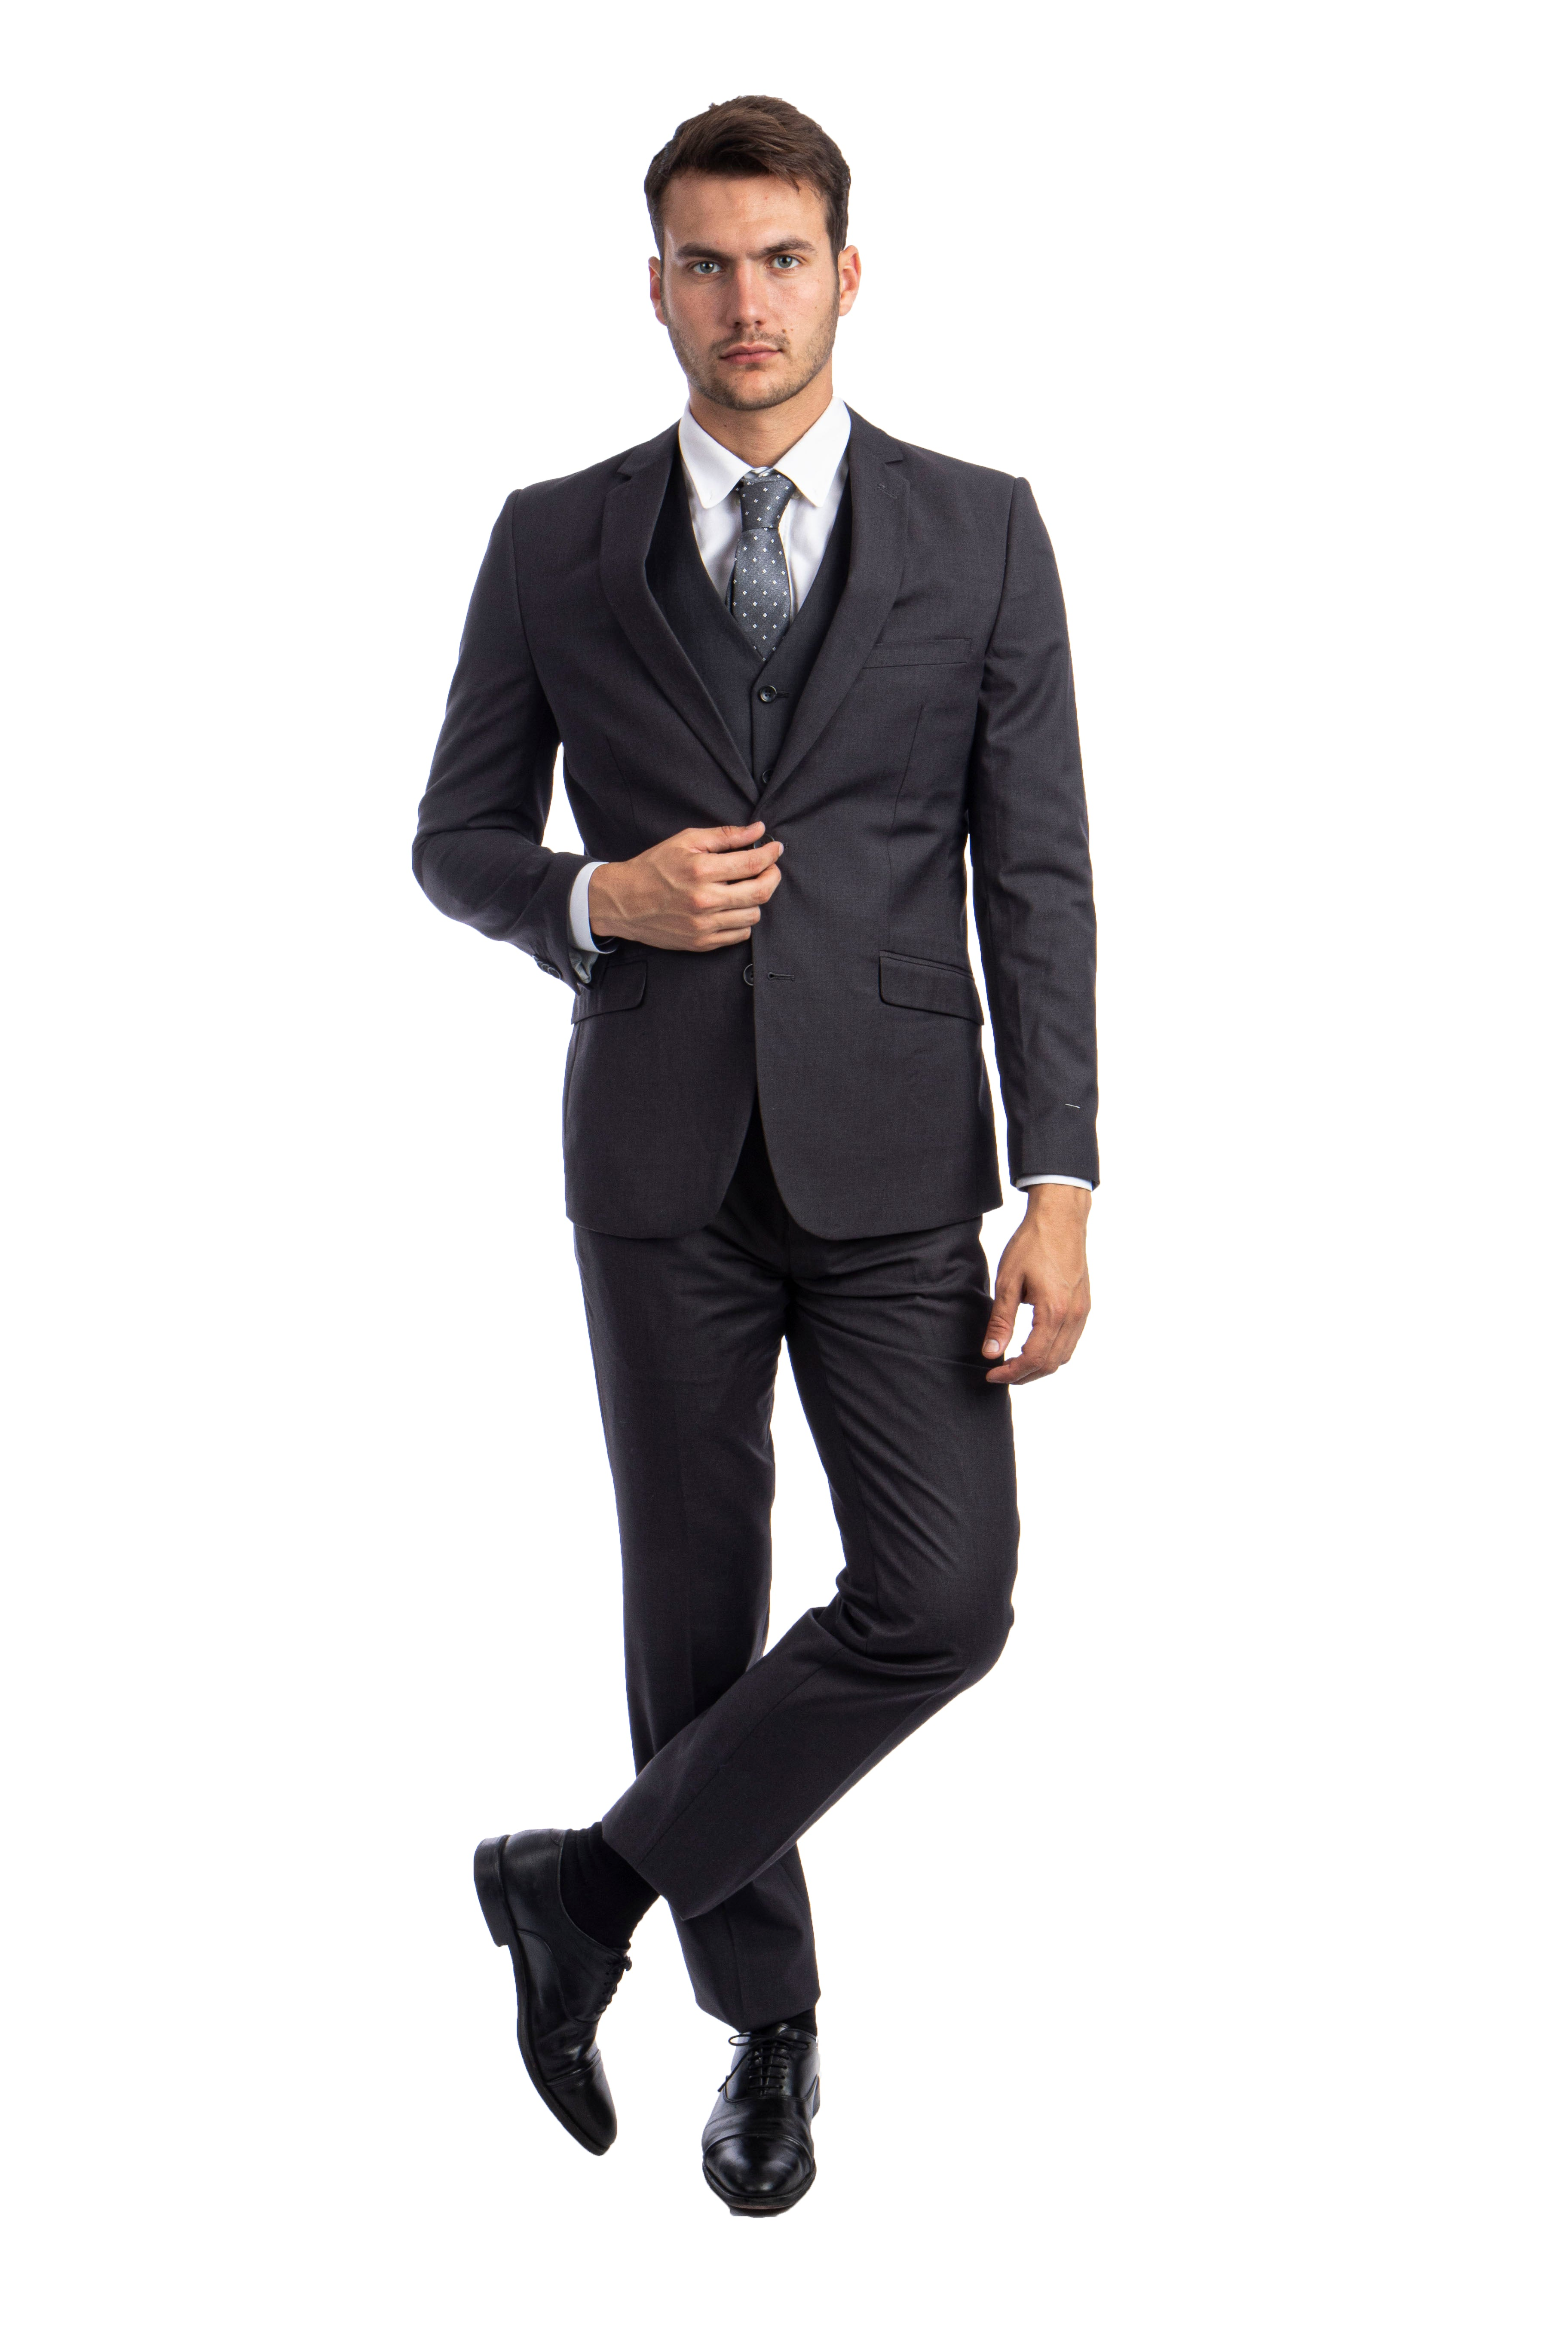 Charcoal Suit For Men Formal Suits For All Ocassions